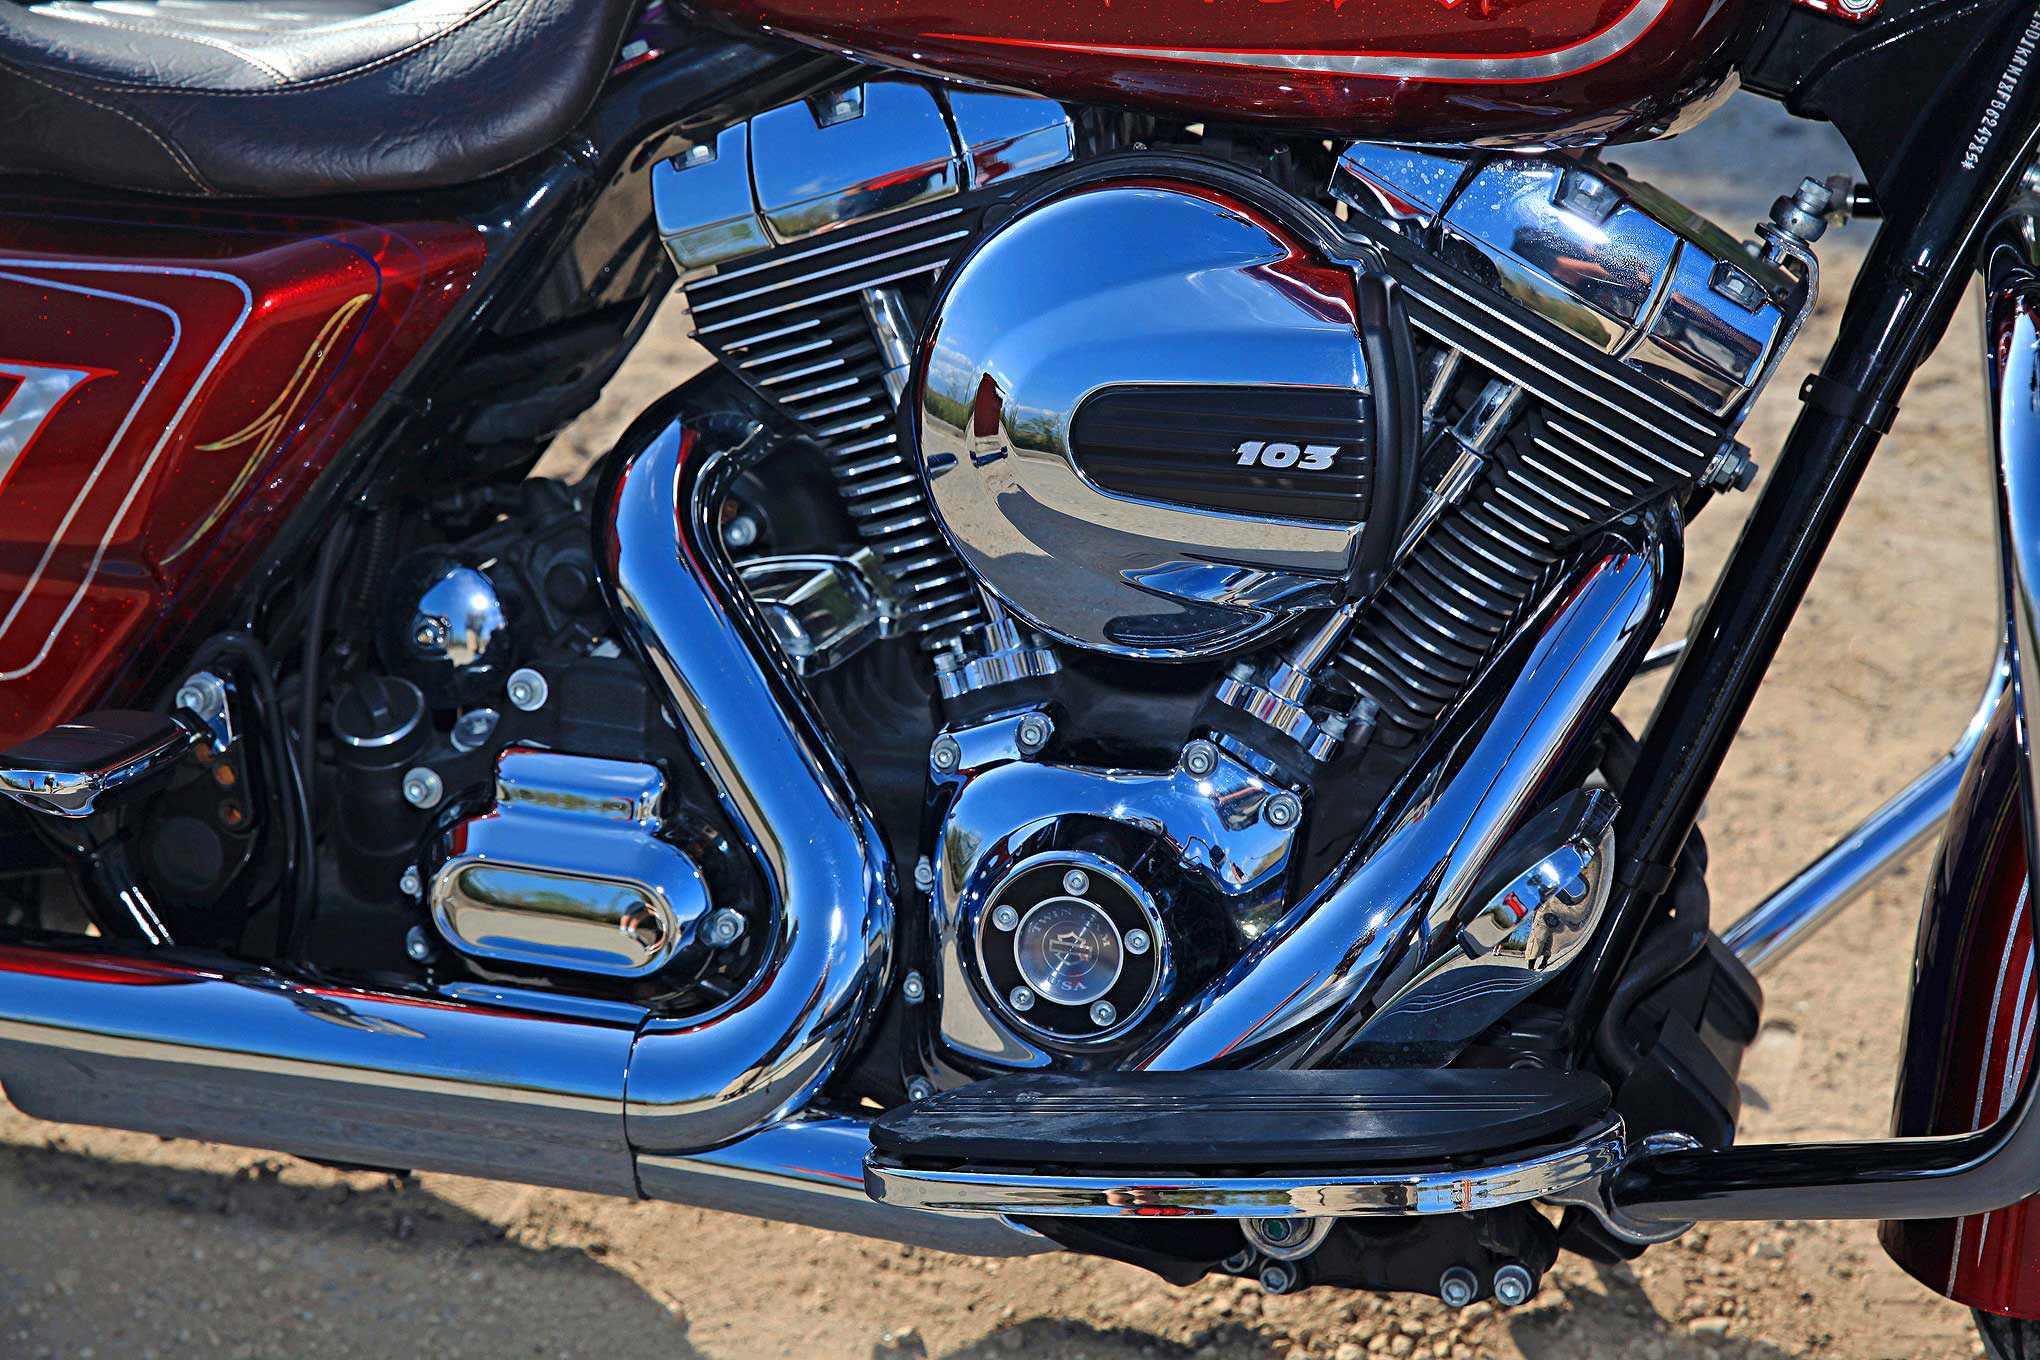 harley davidson street glide  therapeutic build